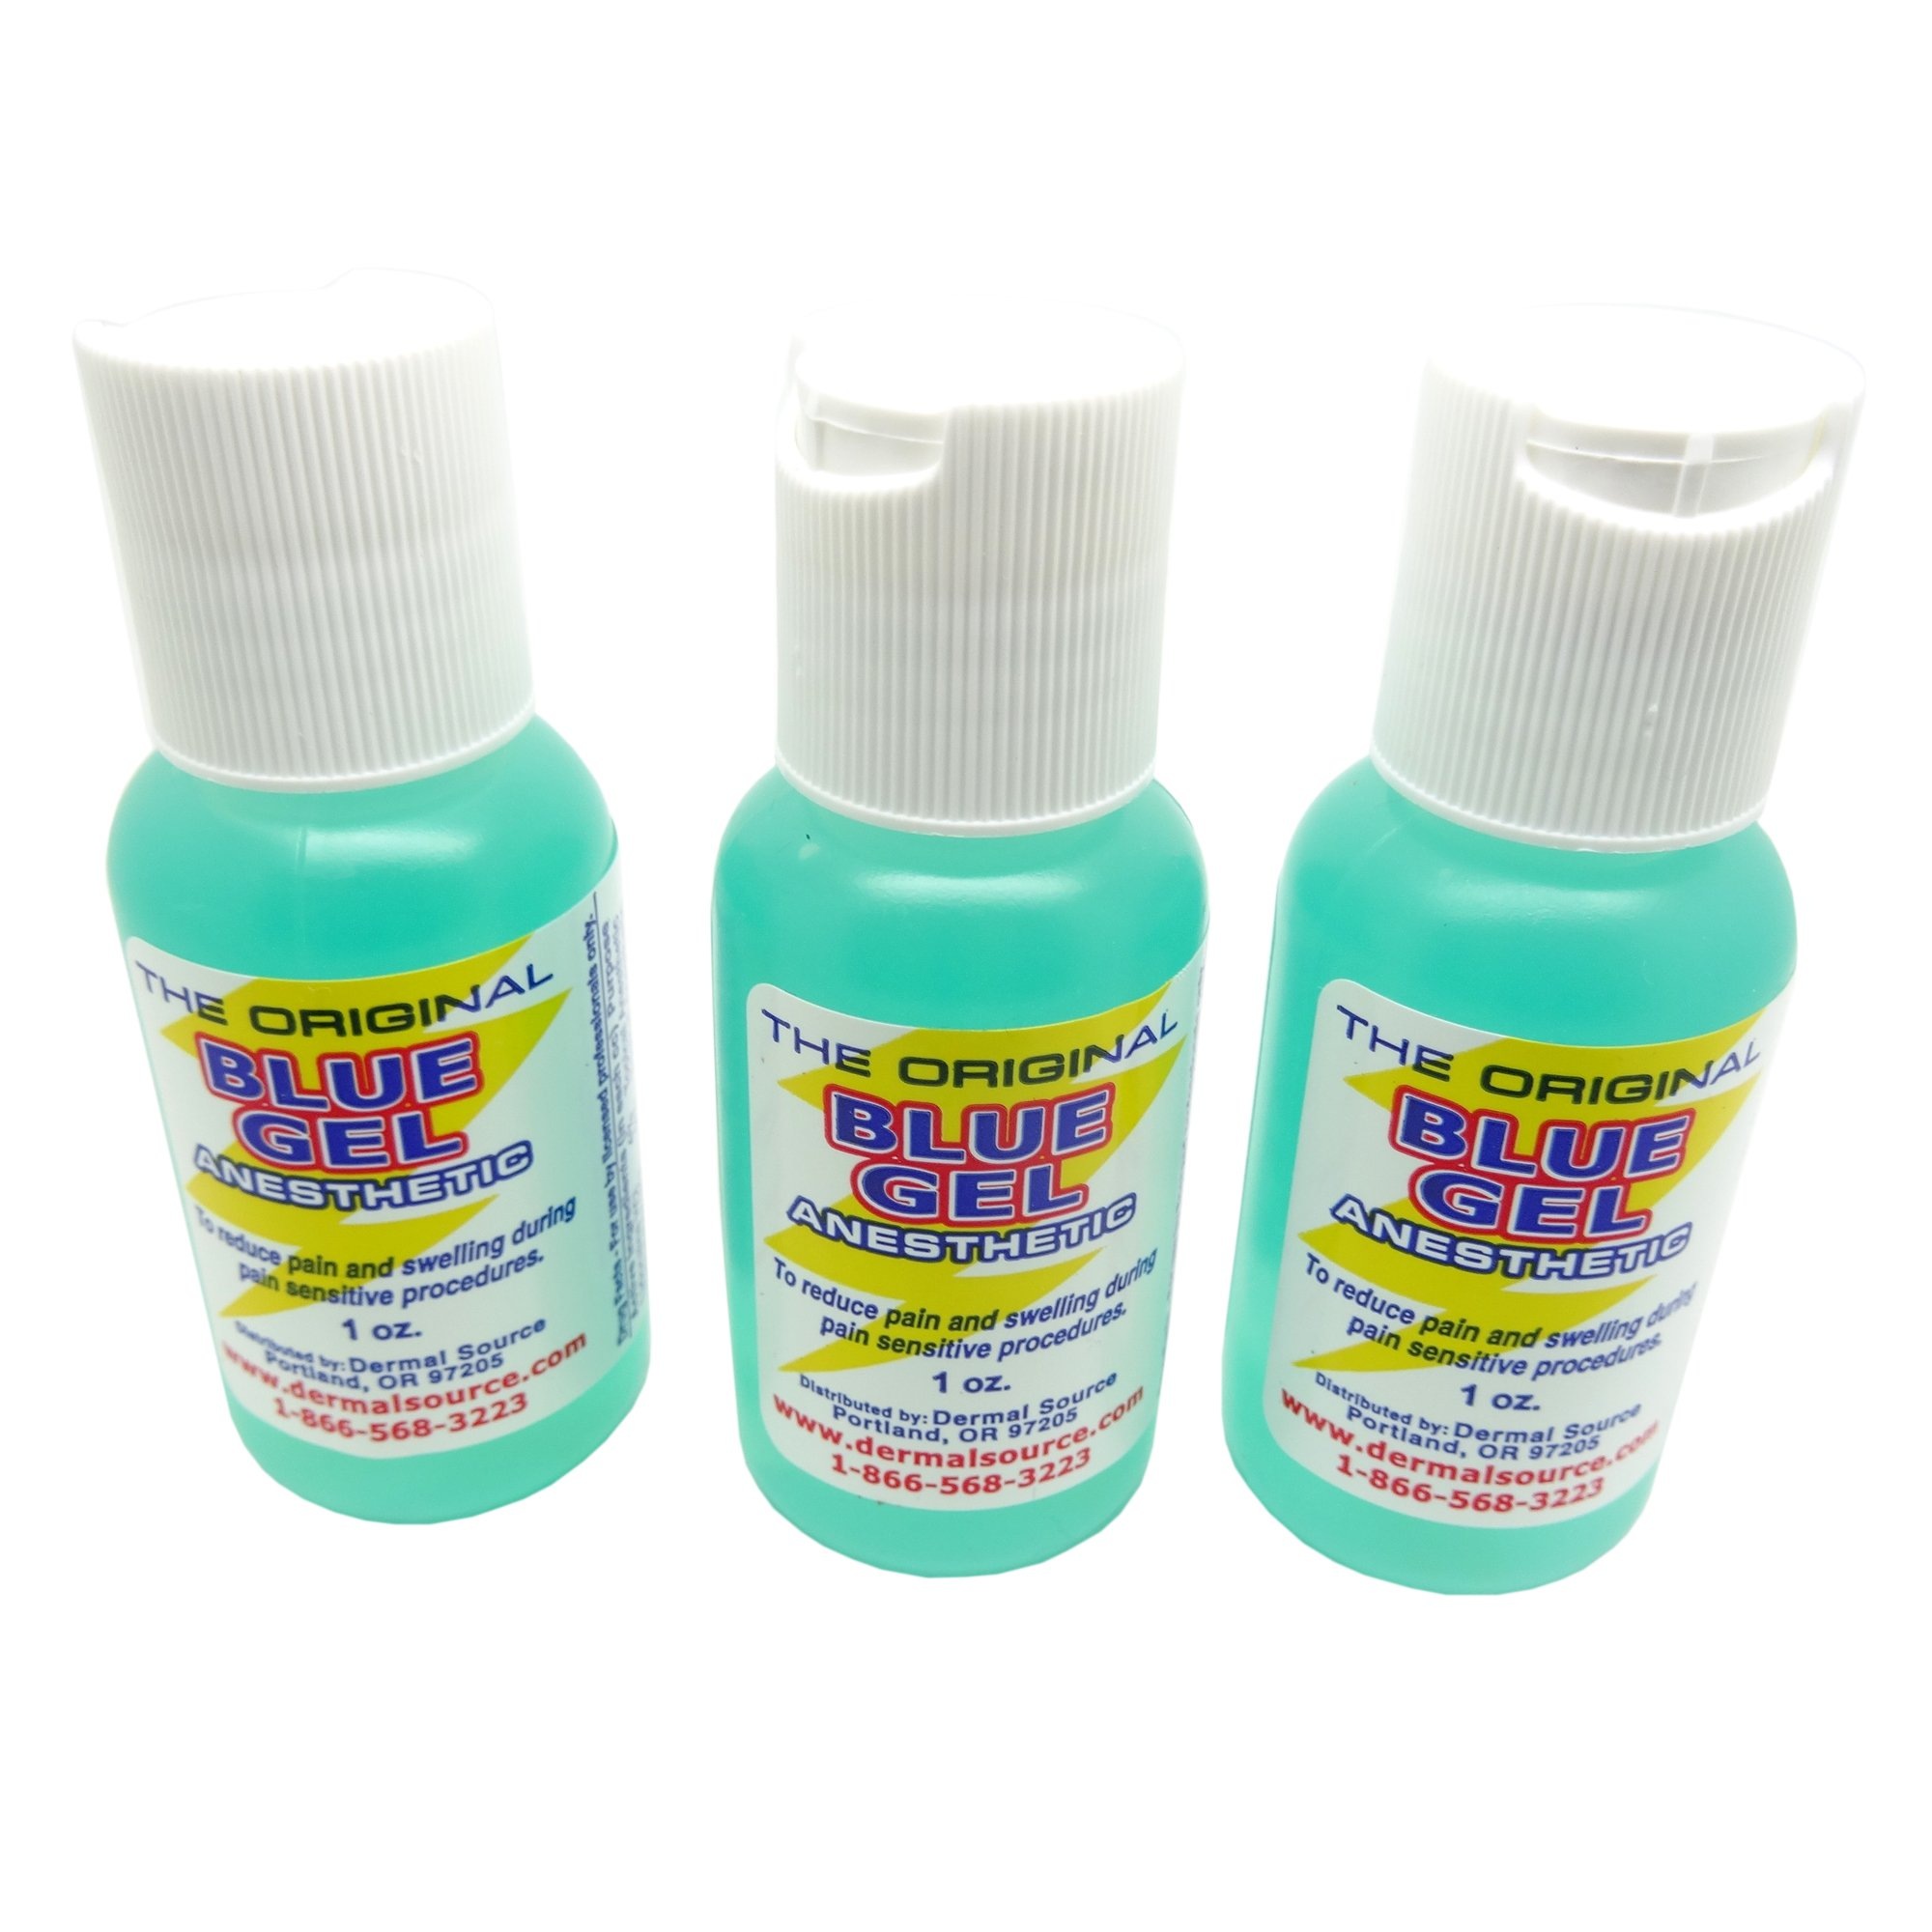 Blue Gel Anesthetic TOP SELLER!